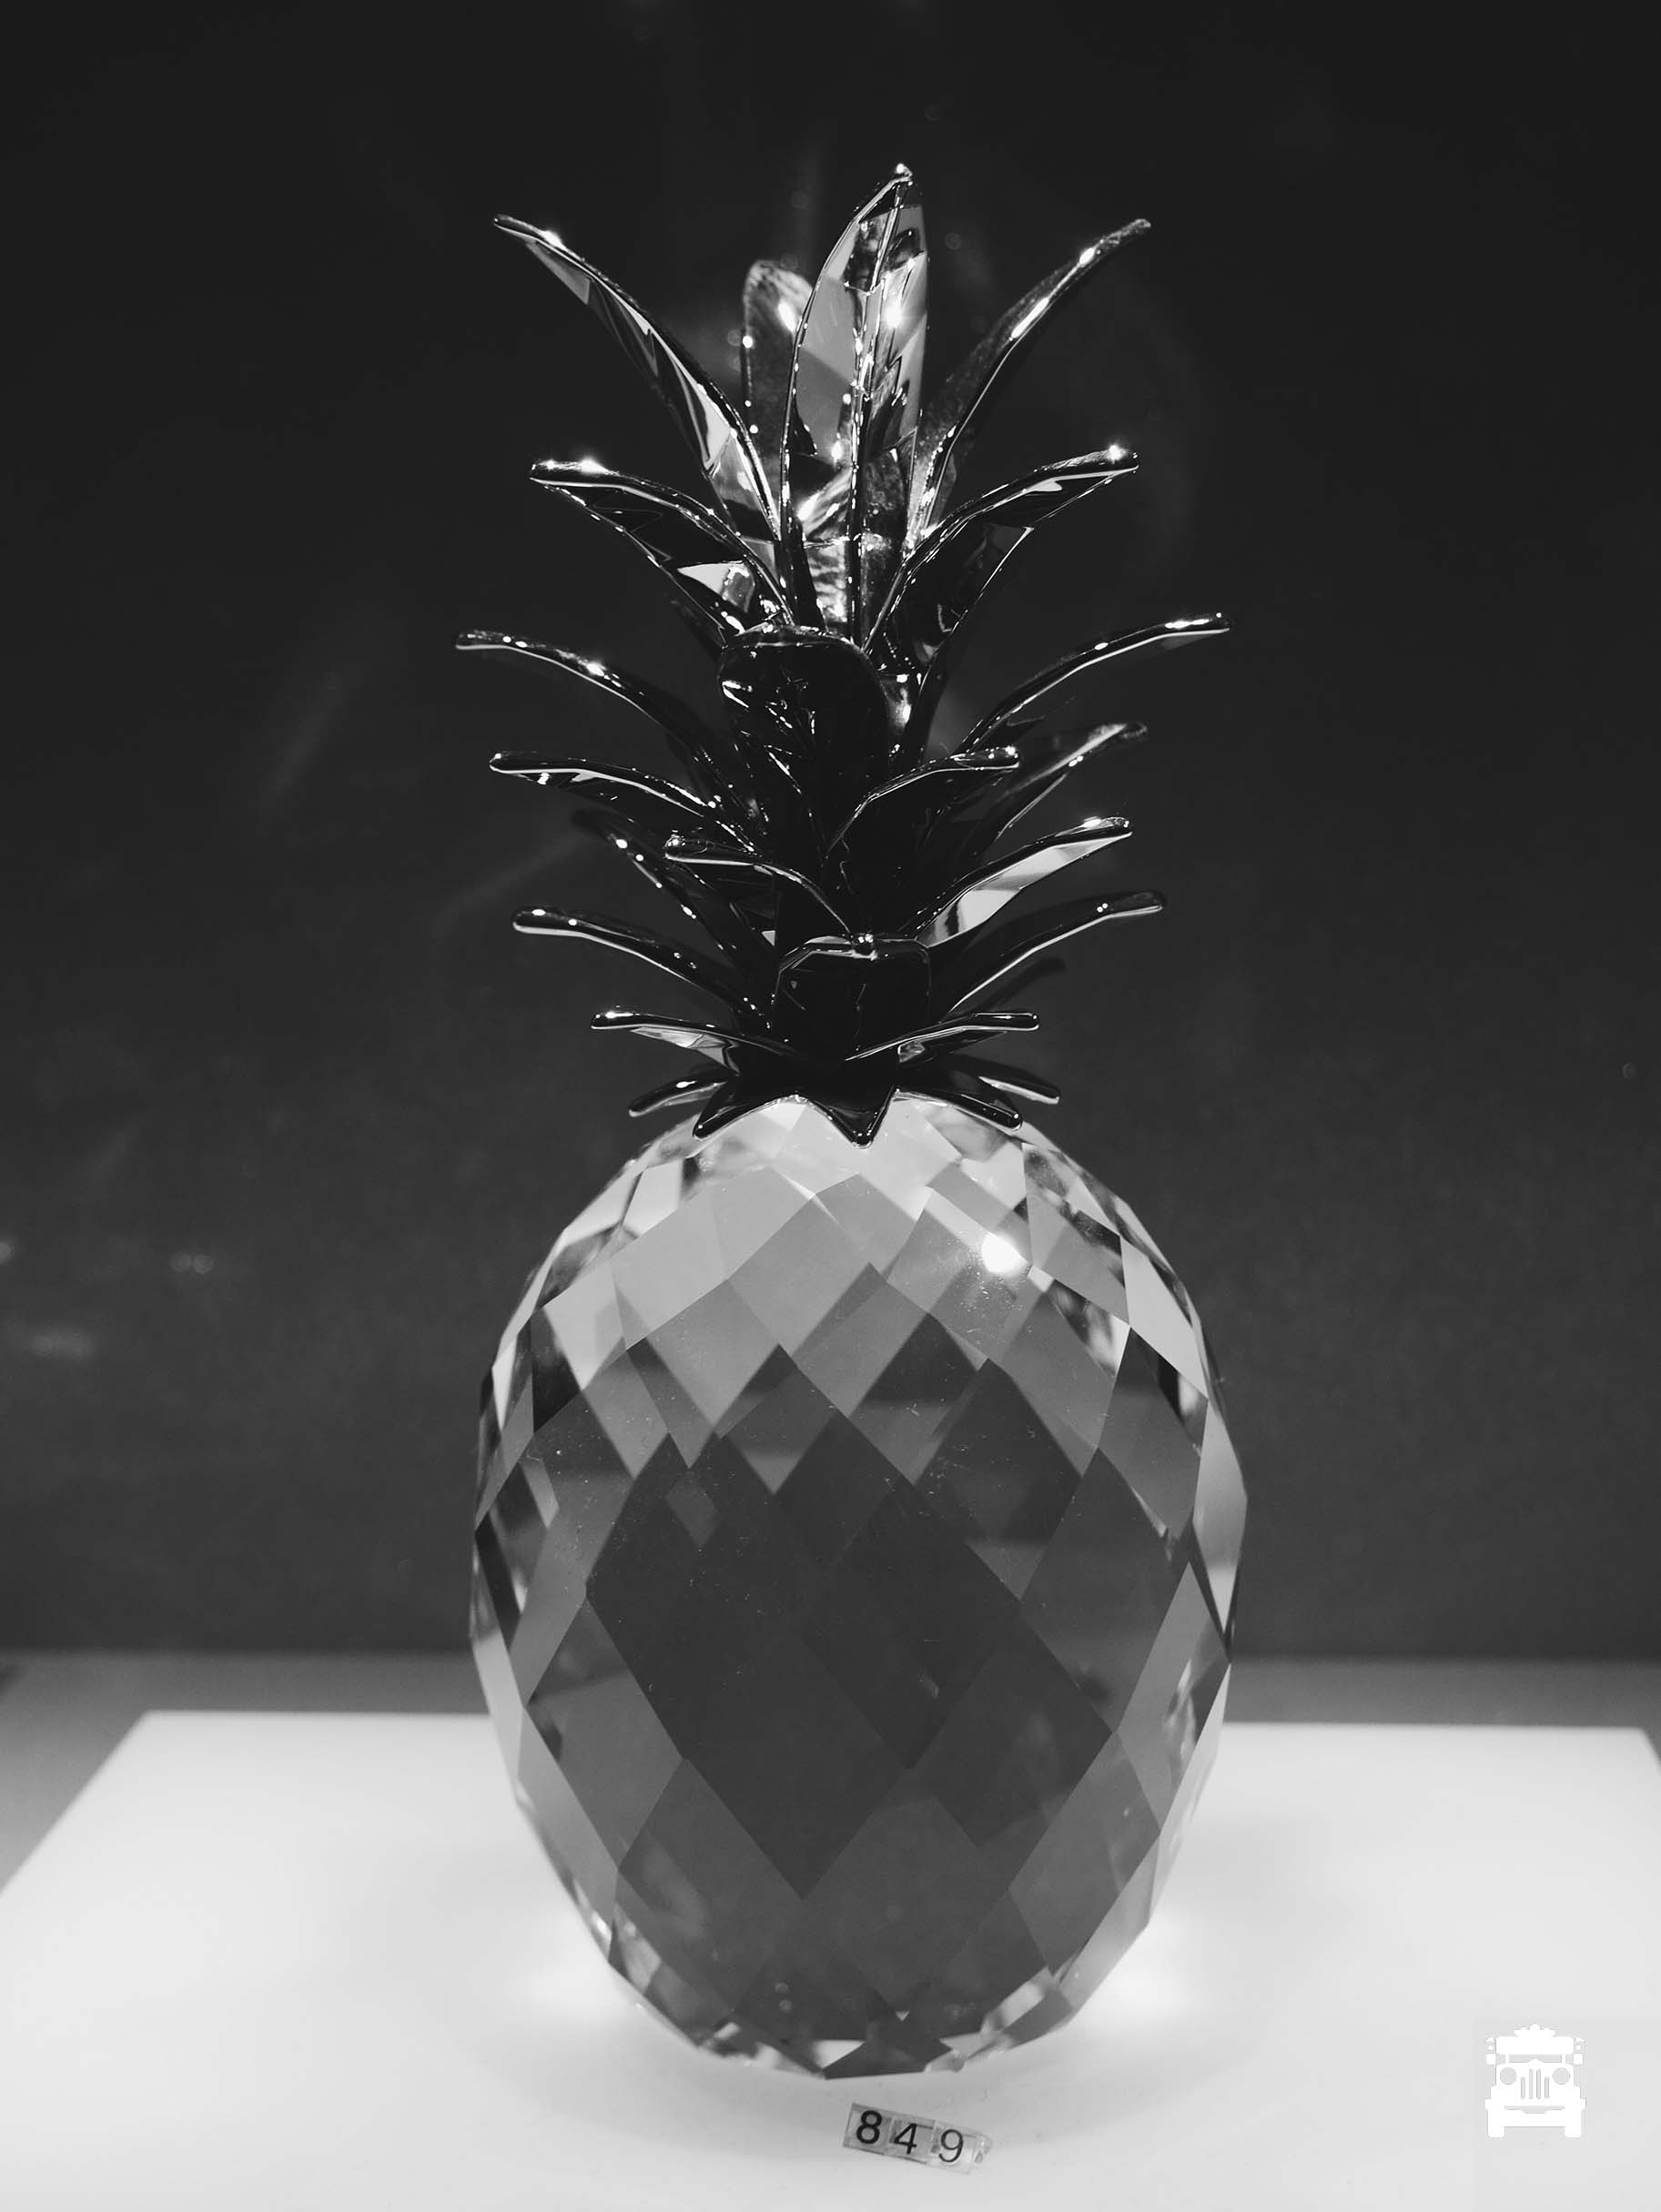 I didn't even take photos of diamonds :S just this crystal pineapple